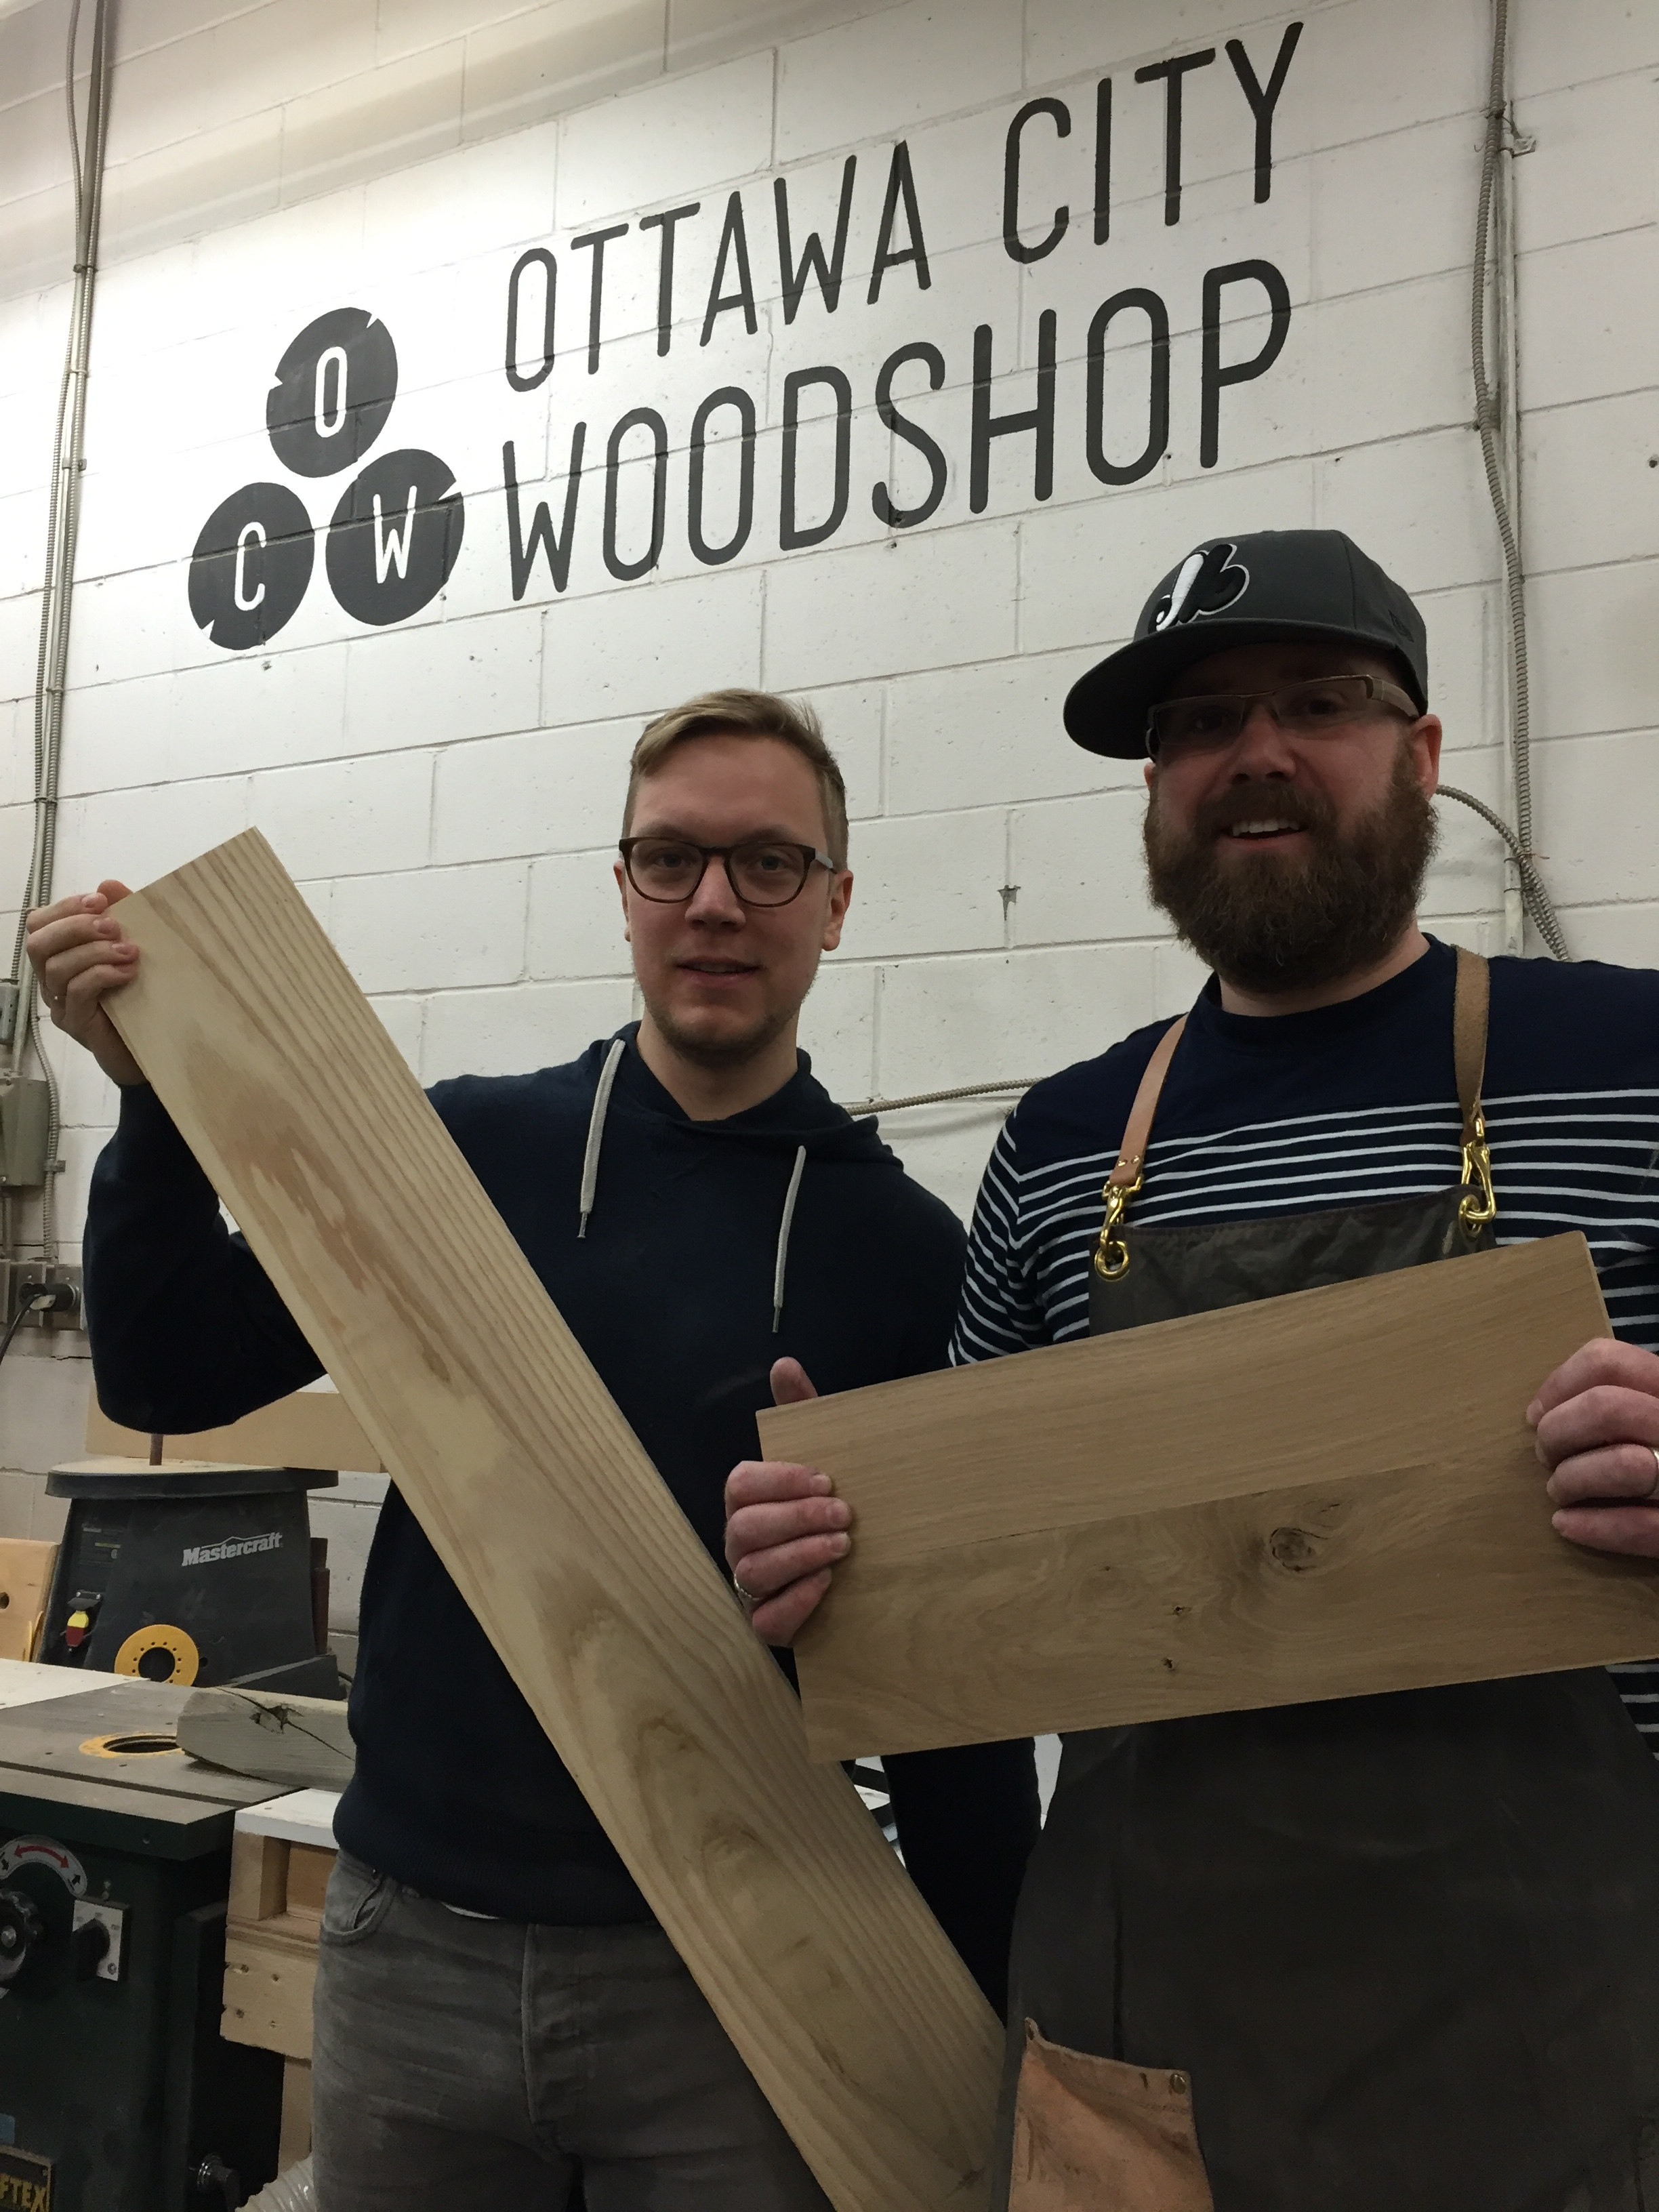 Mike Grigoriev (left) holding a piece of ash, and Matt Wallace (right) with a piece of white oak from the approximately 400 year old ash tree from Manotick.